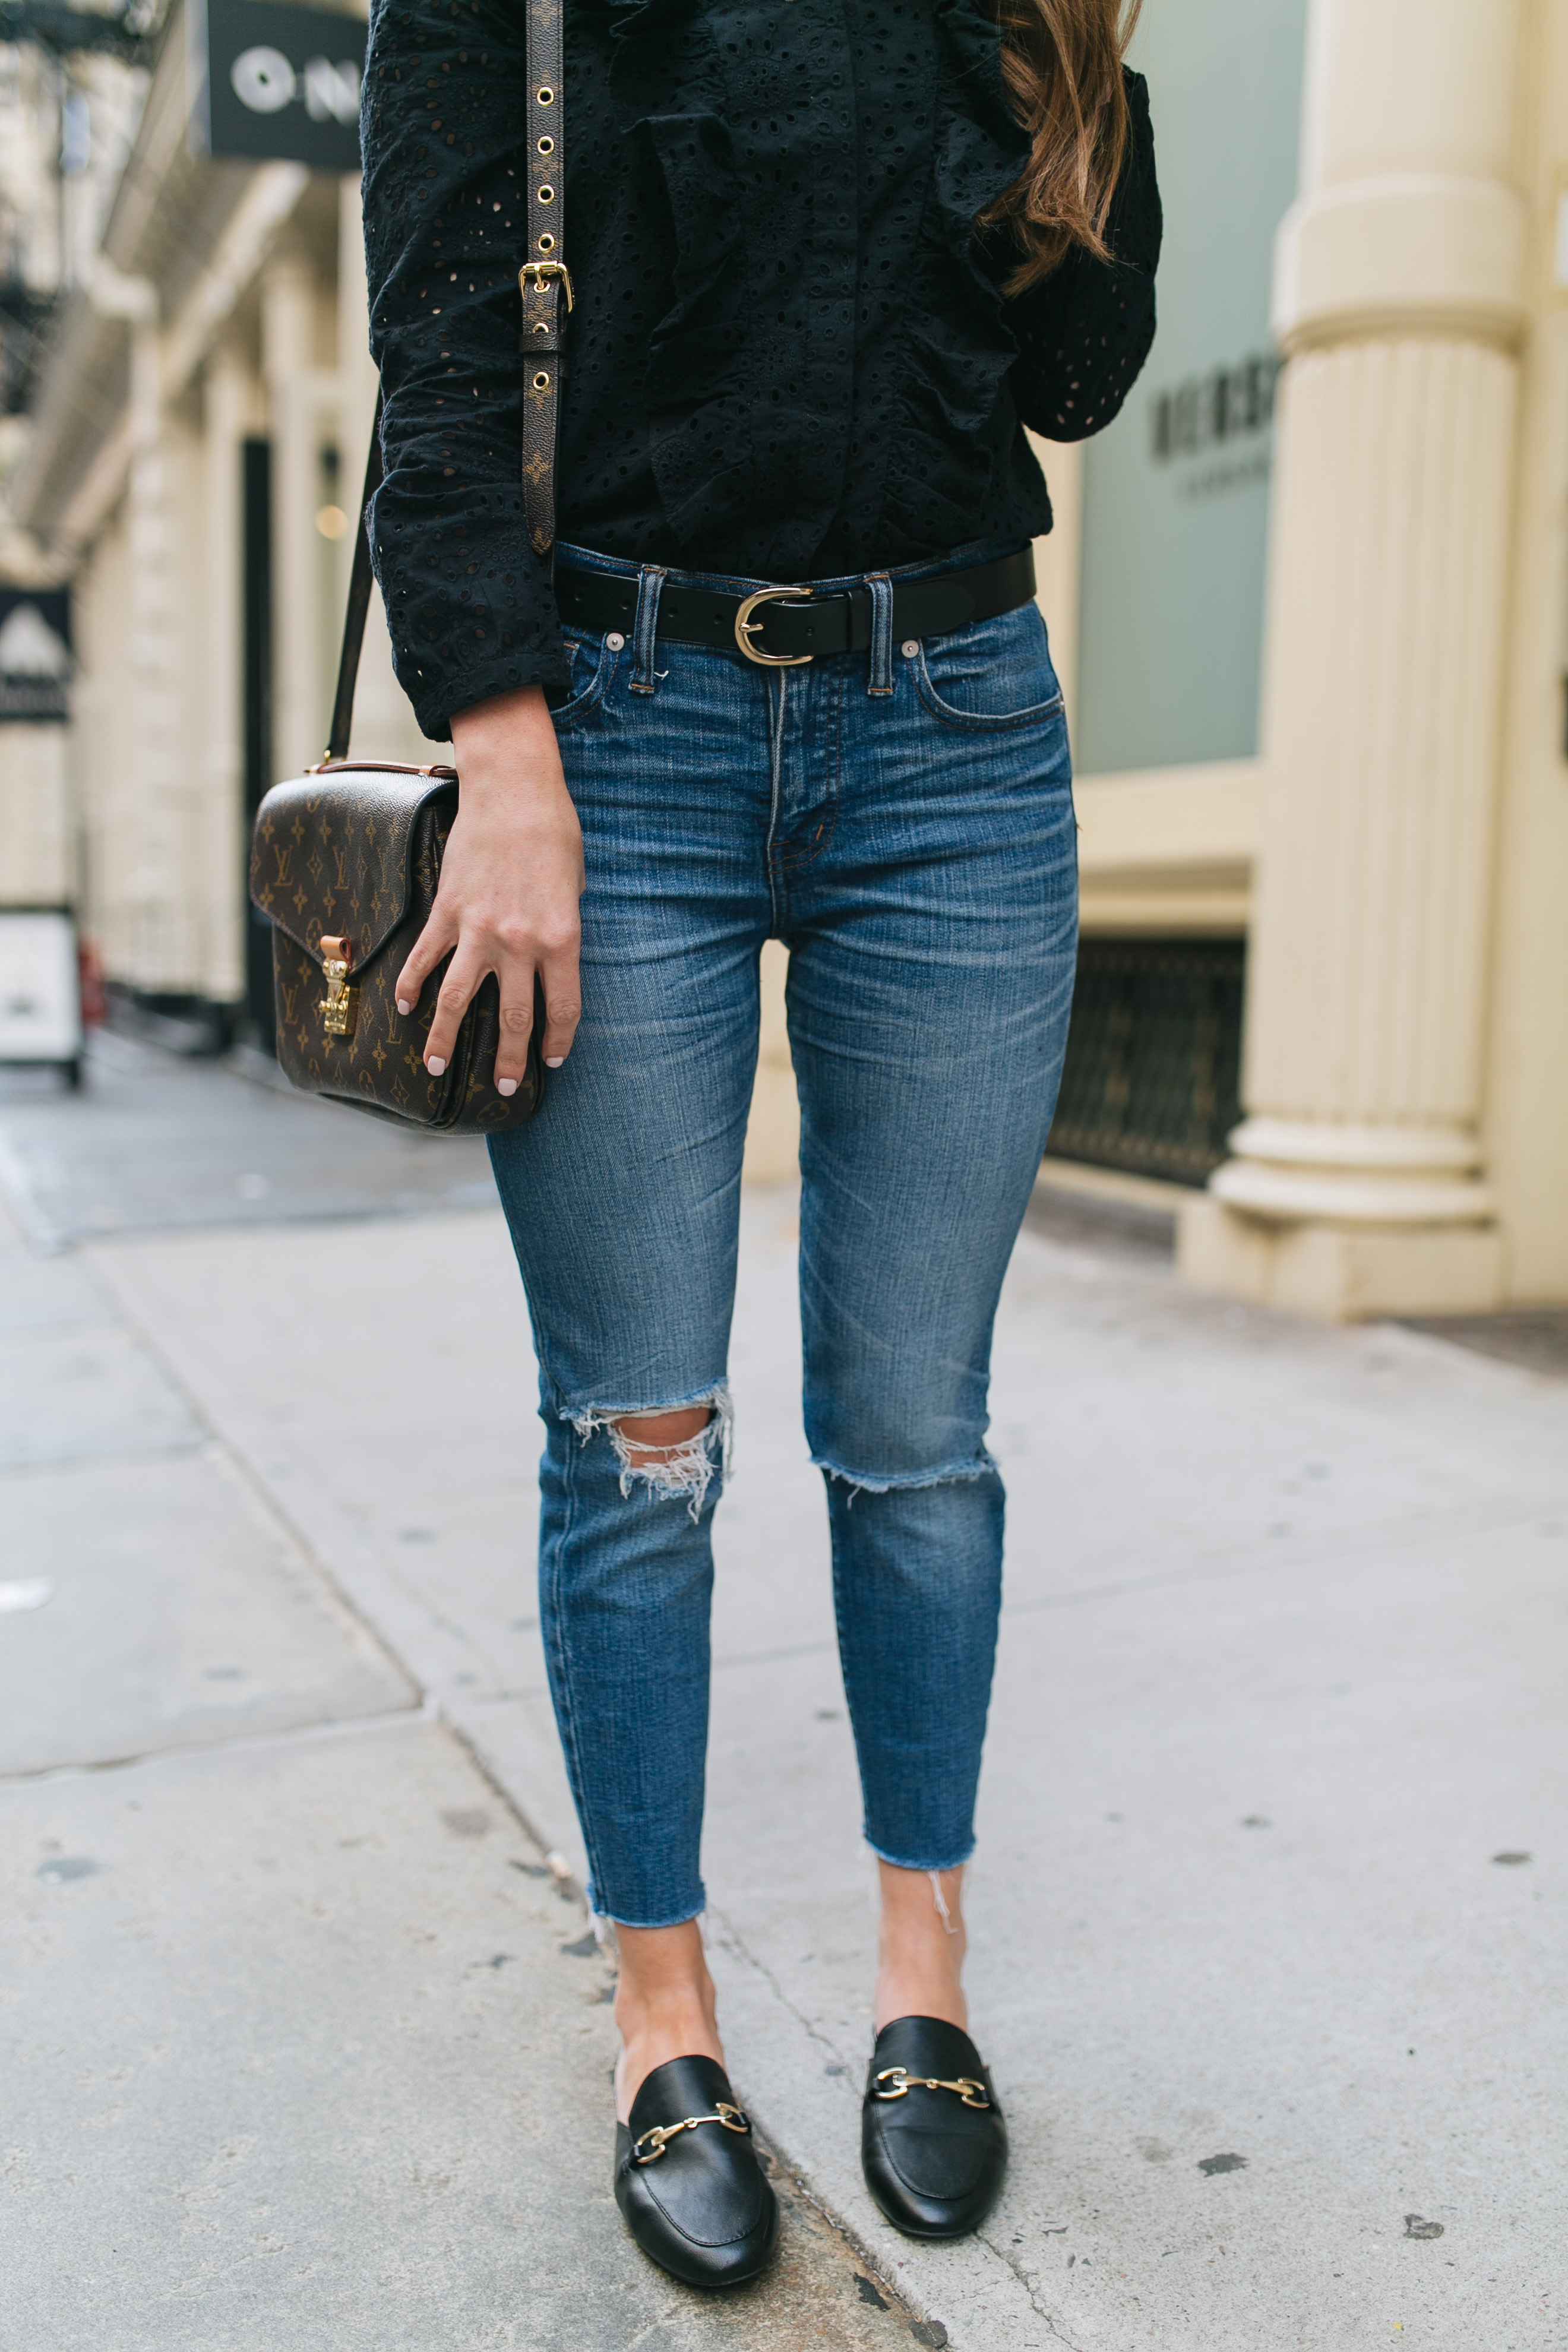 Style blogger Daryl-Ann Denner wears black eyelet ruffle top and Gucci Princetown Loafer Mule dupe for under $25